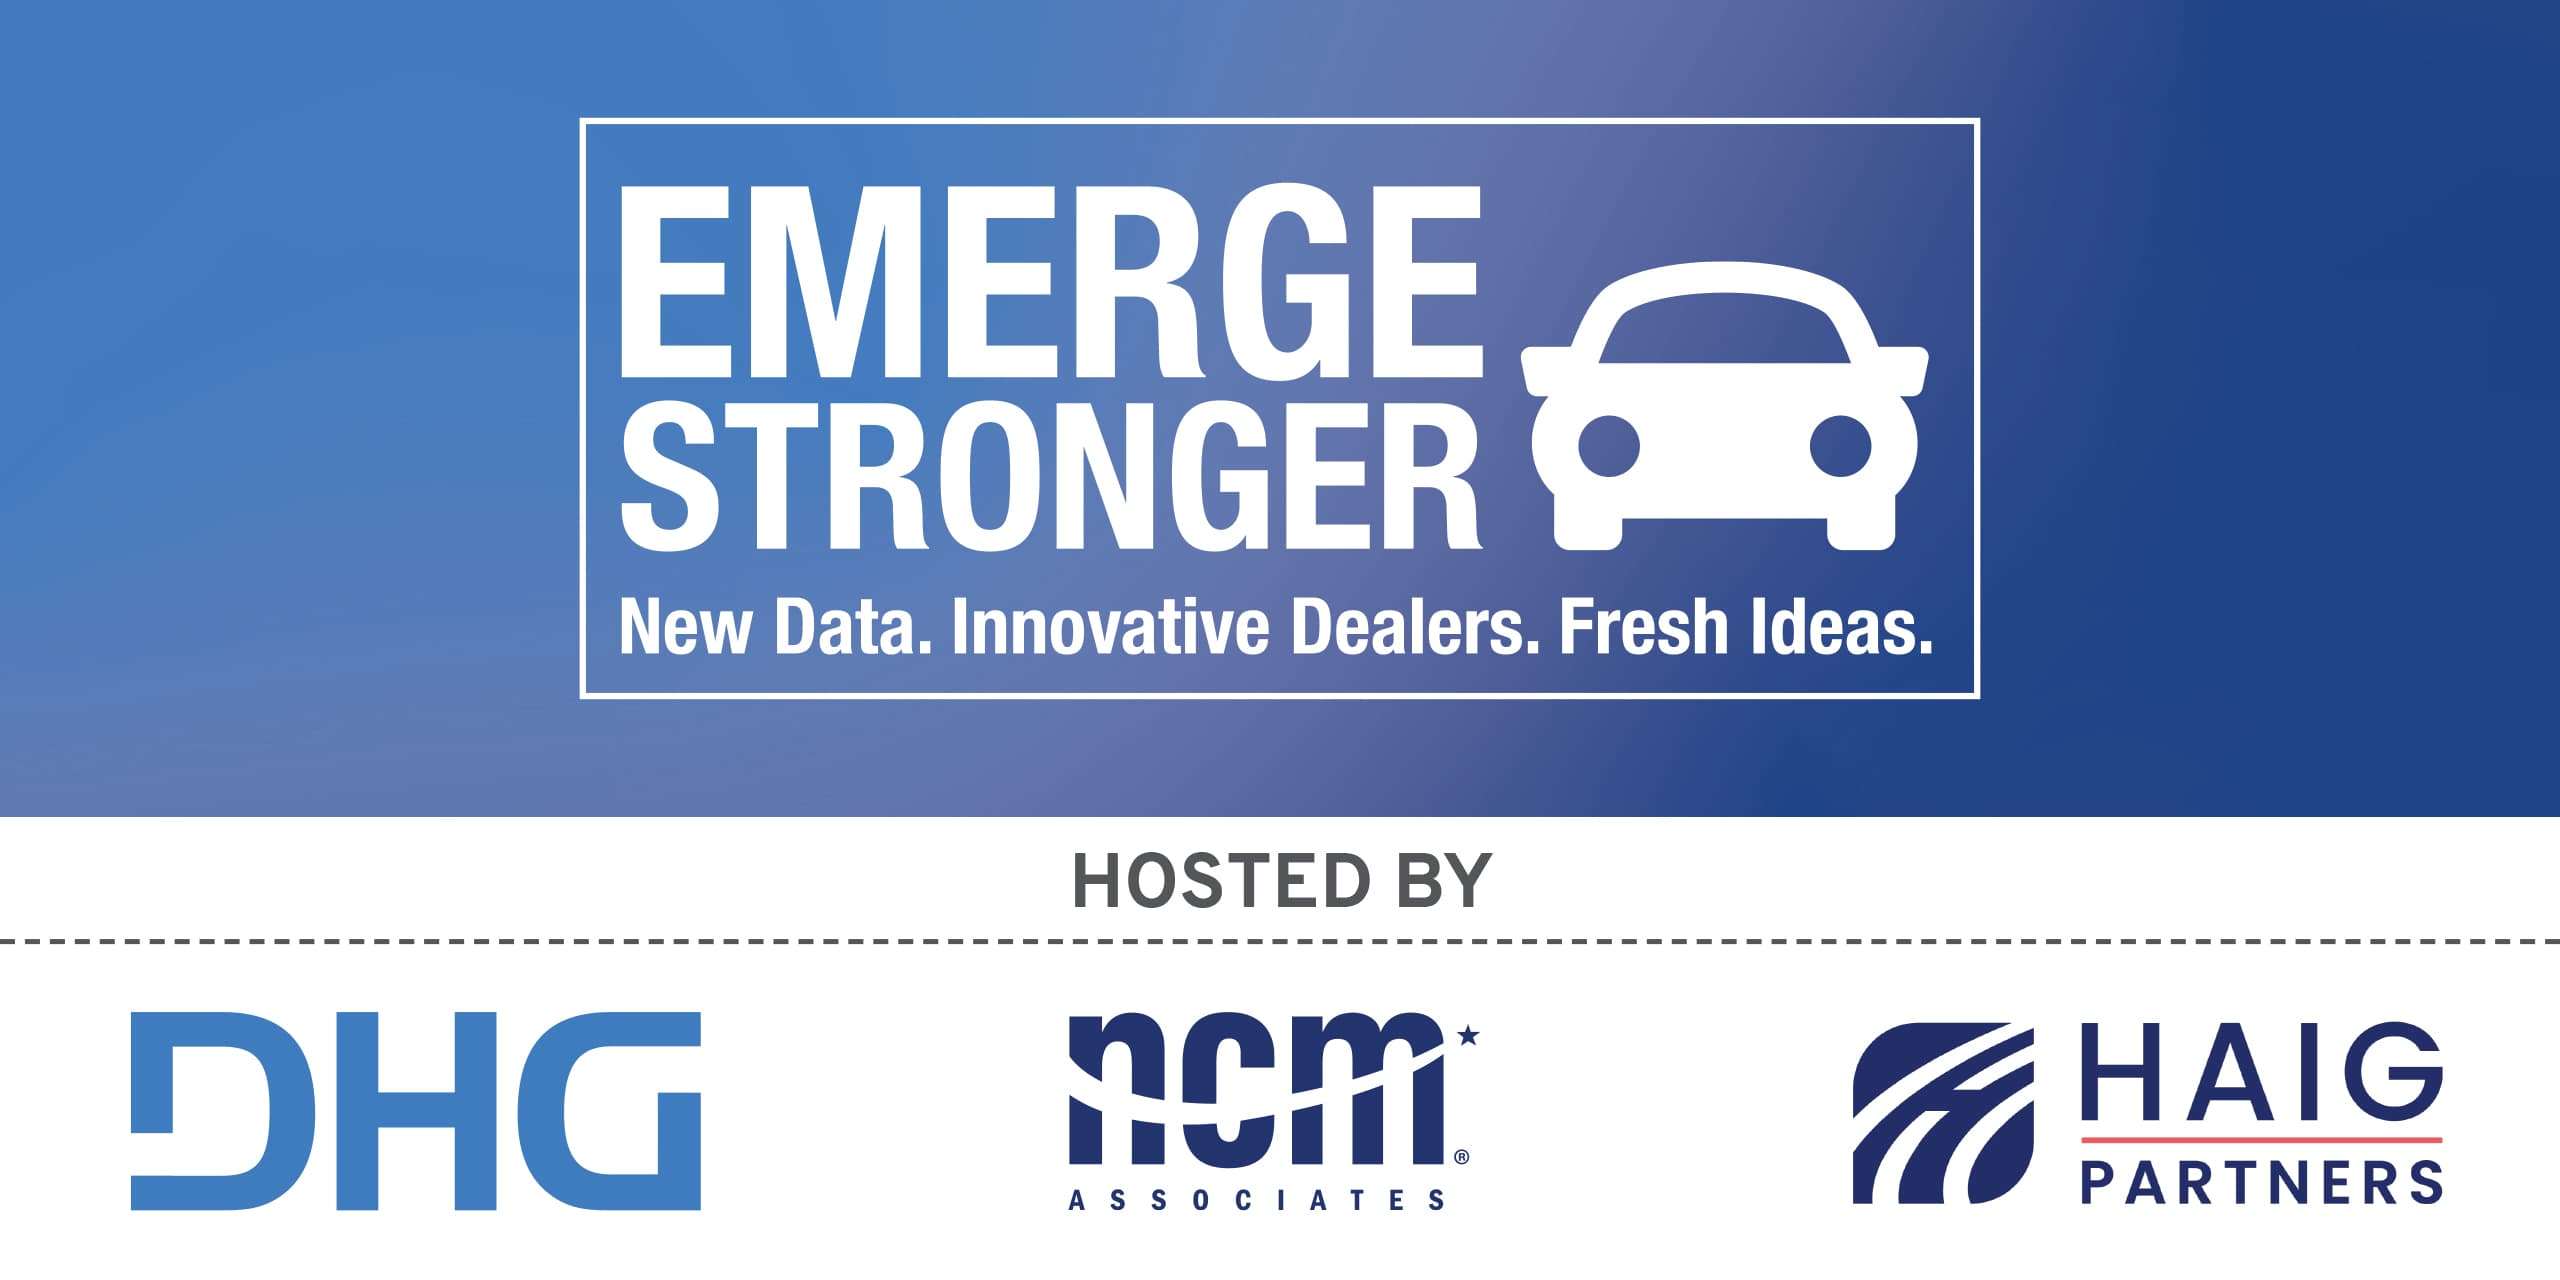 Dealerships-Emerge-Stronger.jpg